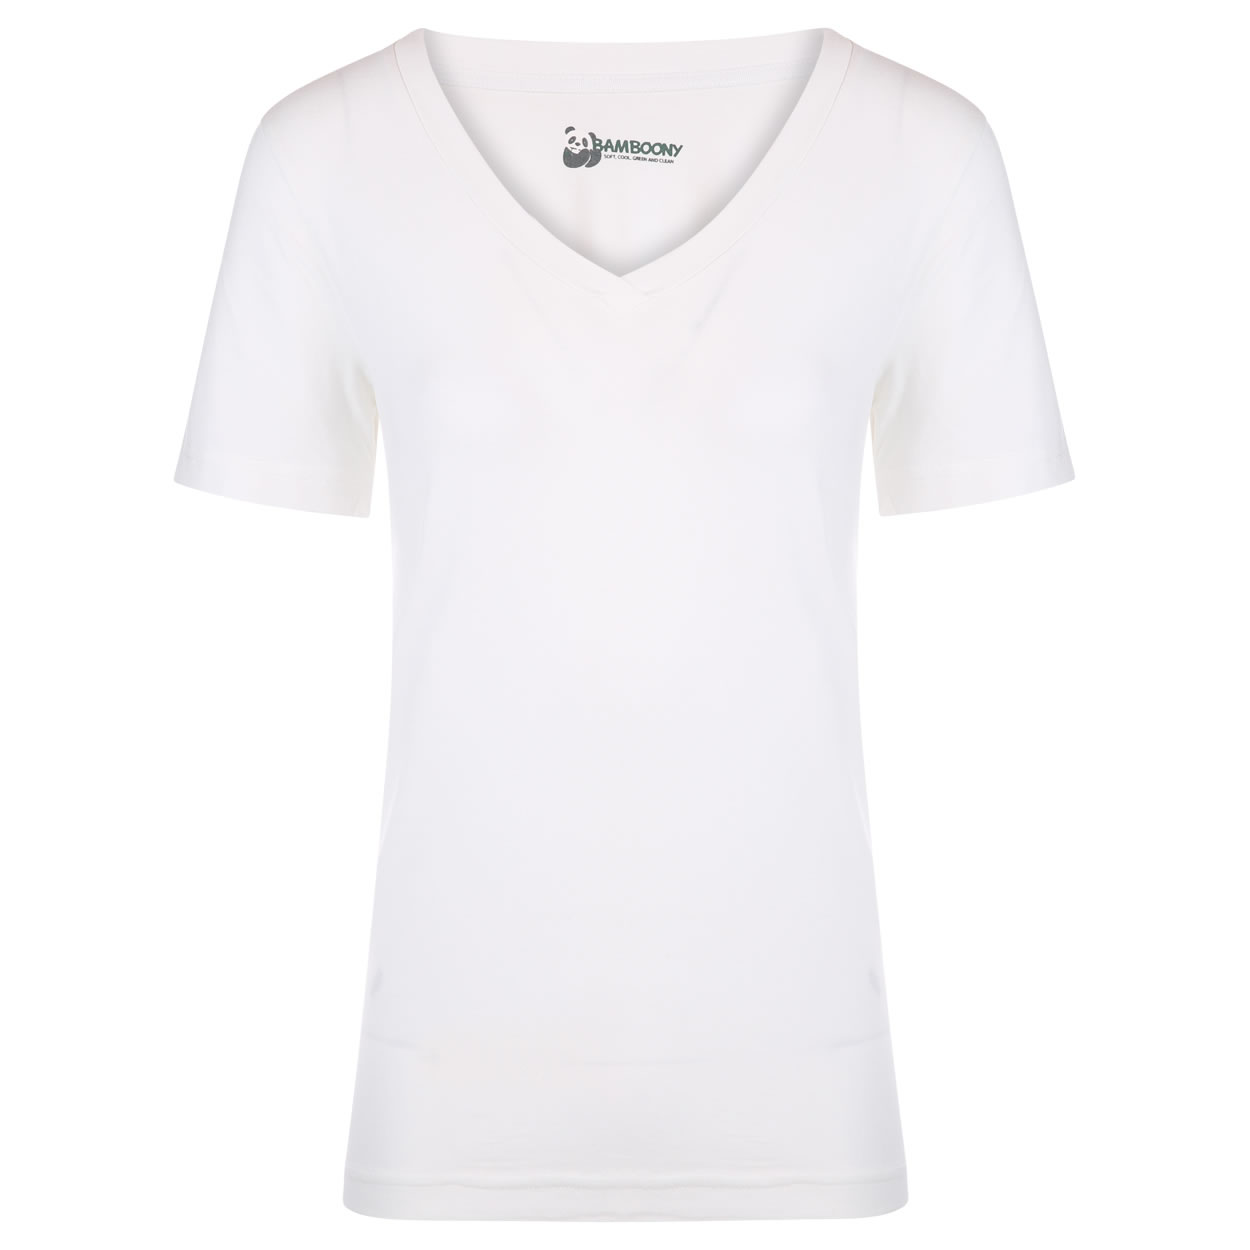 4b2c33330b3 Luxe V-hals Dames Tshirt - wit